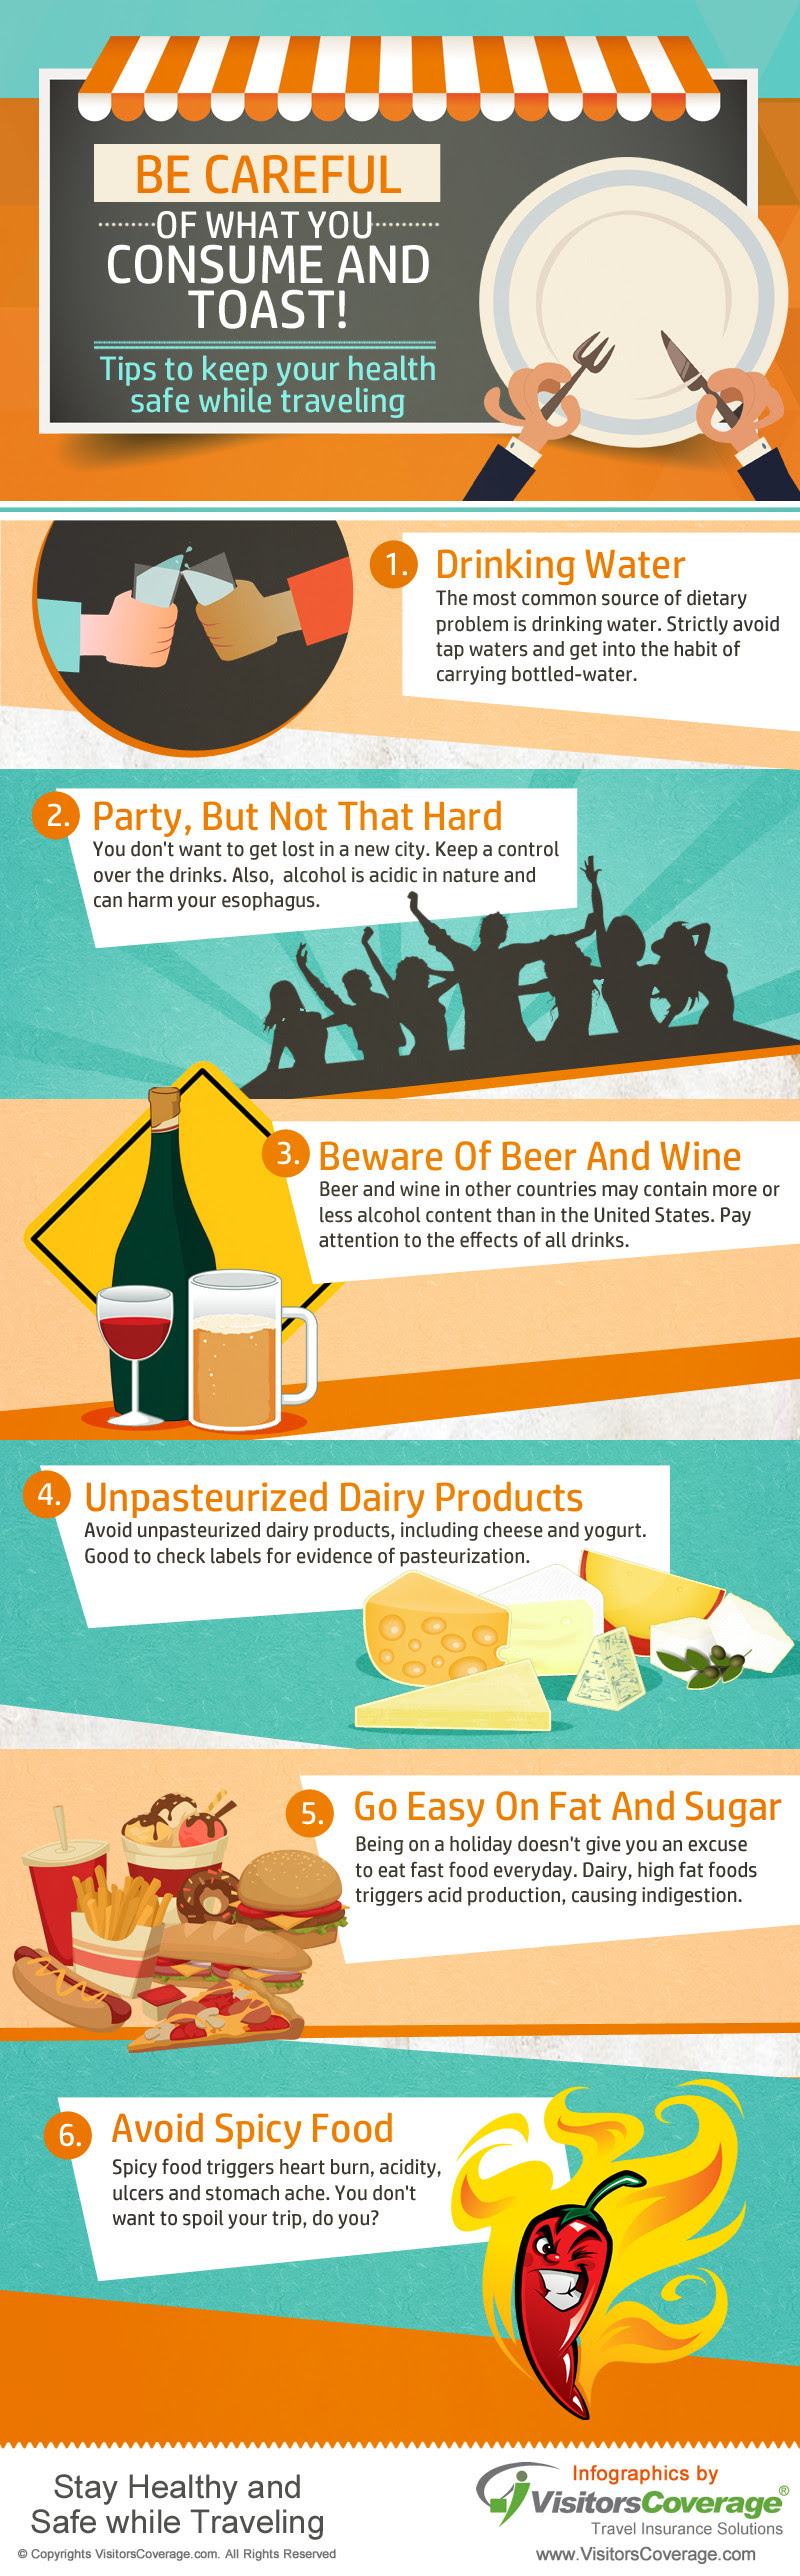 Infographic: Tips to Keep your Health Safe While Traveling #Infographic #Health #Travel